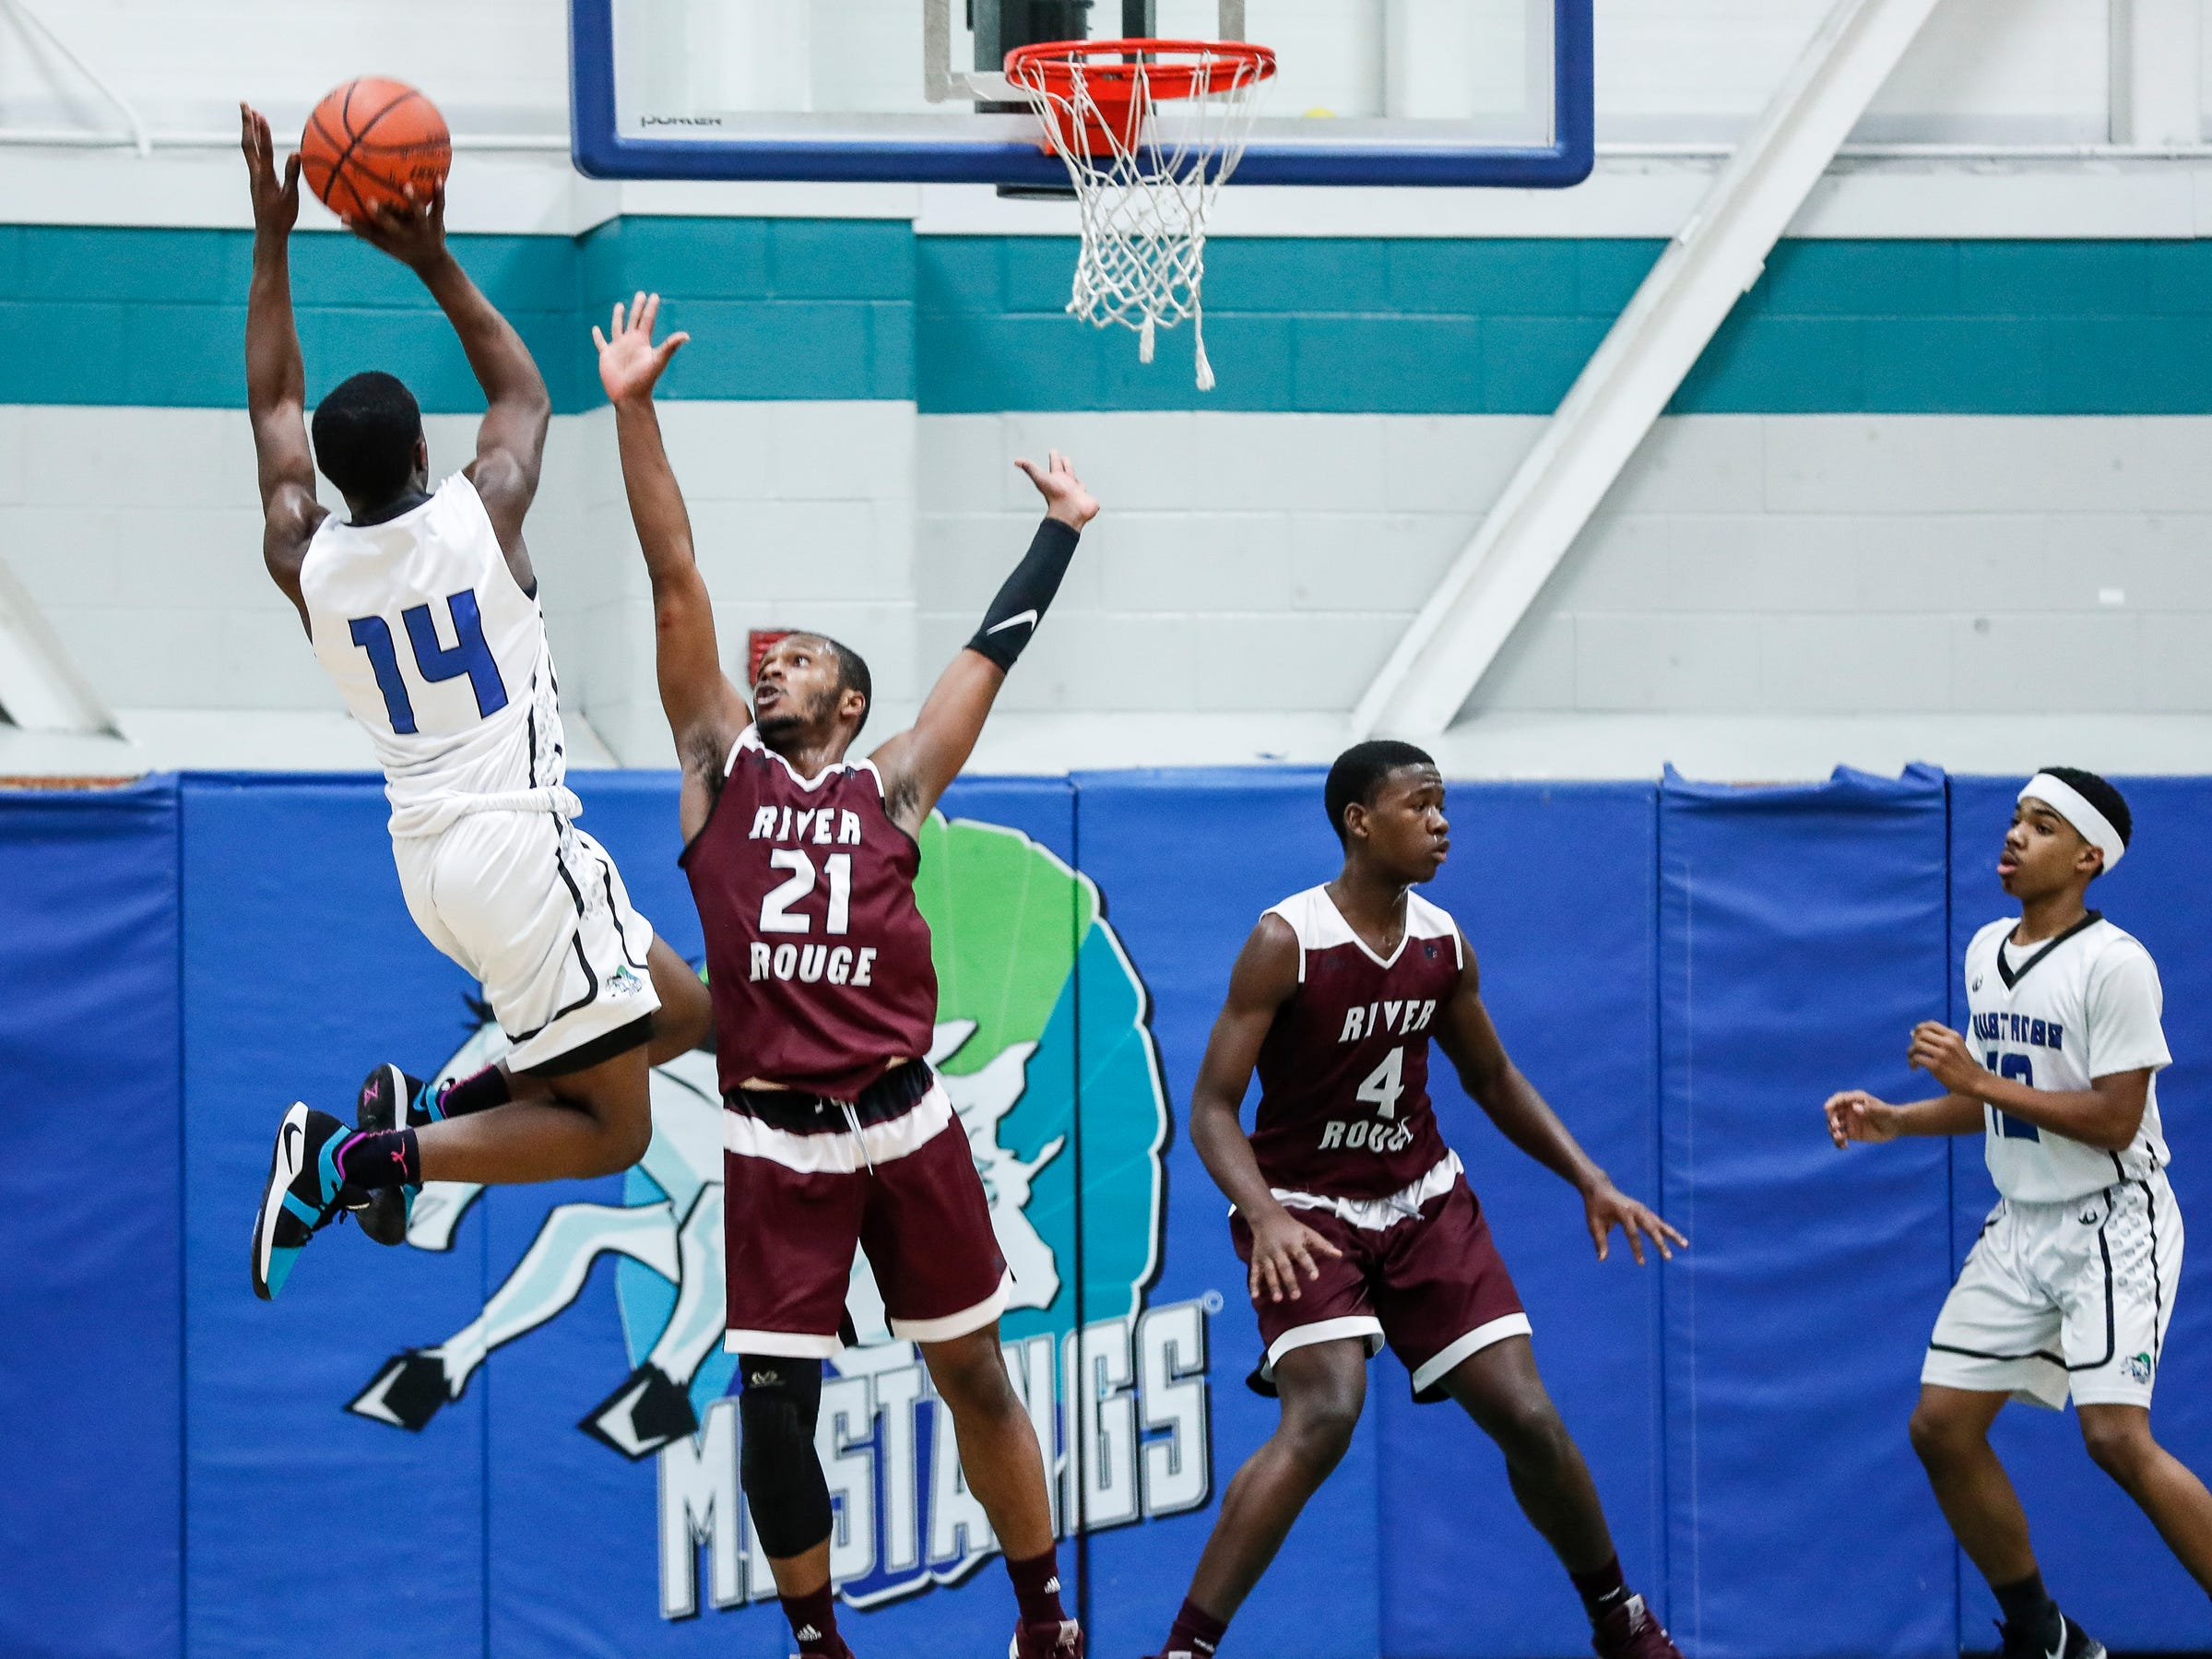 Henry Ford Academy: School for Creative Studies Malik Smith (14) shoots against River Rouge Nigel Colvin (21) during first half at the A. Alfred Taubman Center For Design Education in Detroit, Tuesday, Jan. 8, 2019.